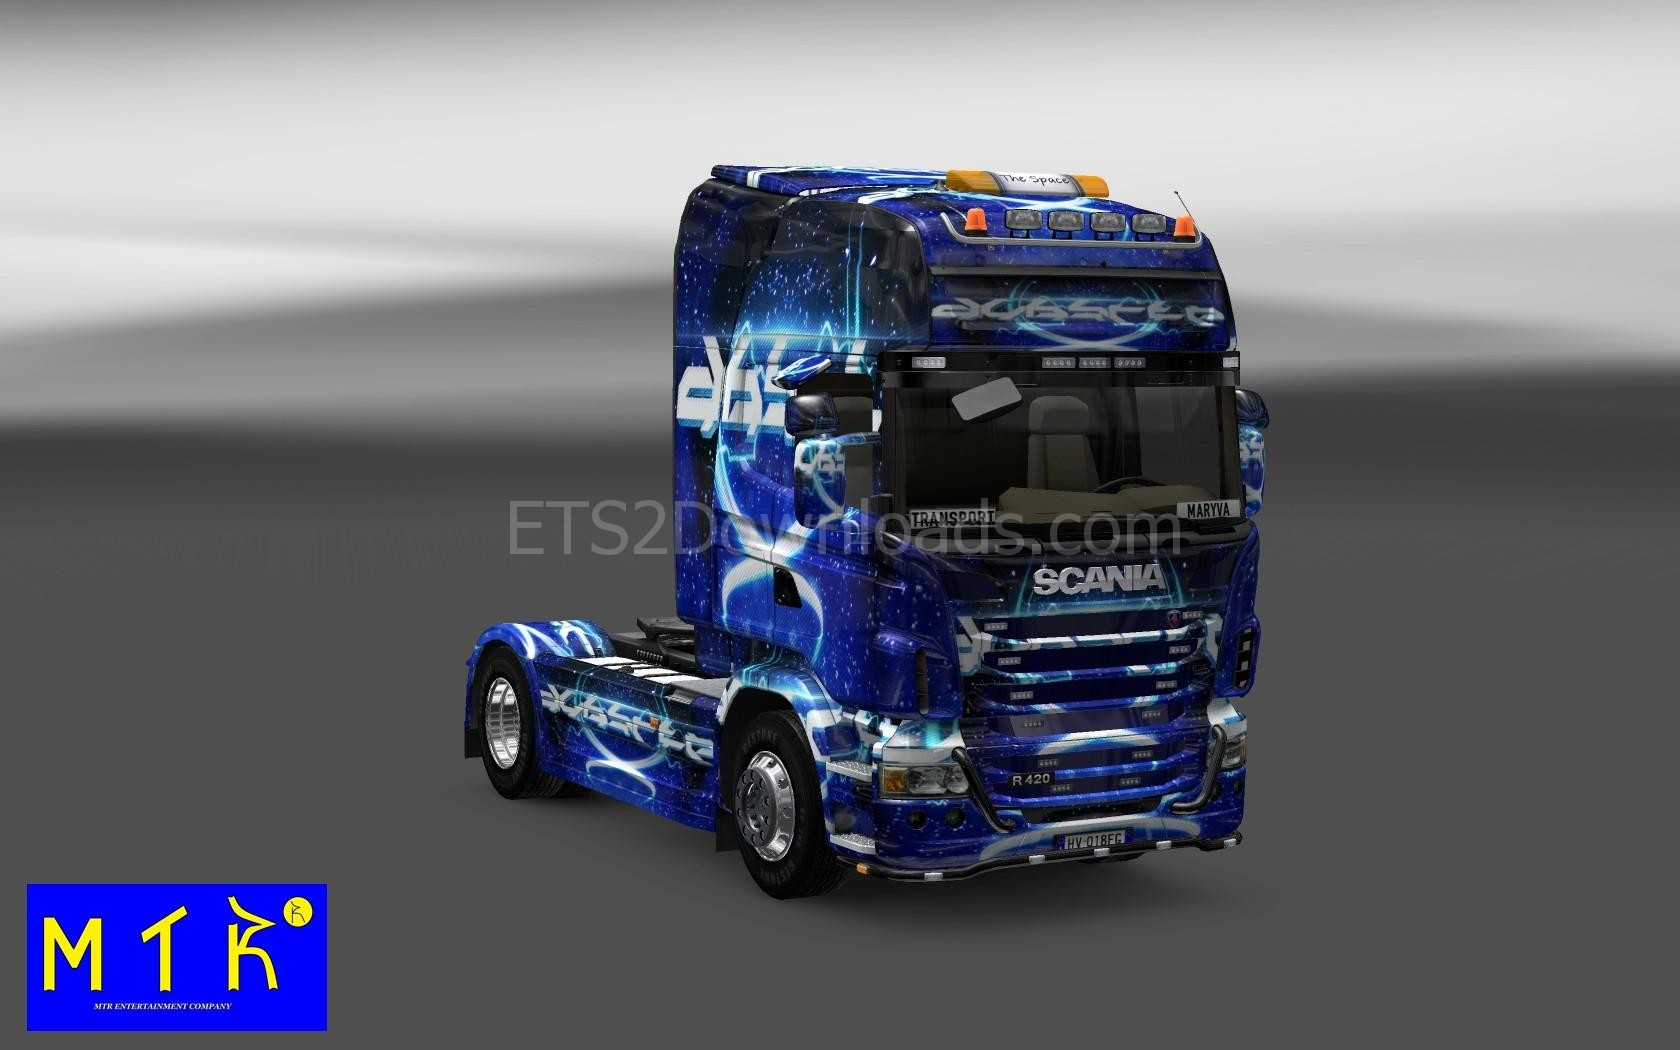 dubstep-skin-for-scania-ets2